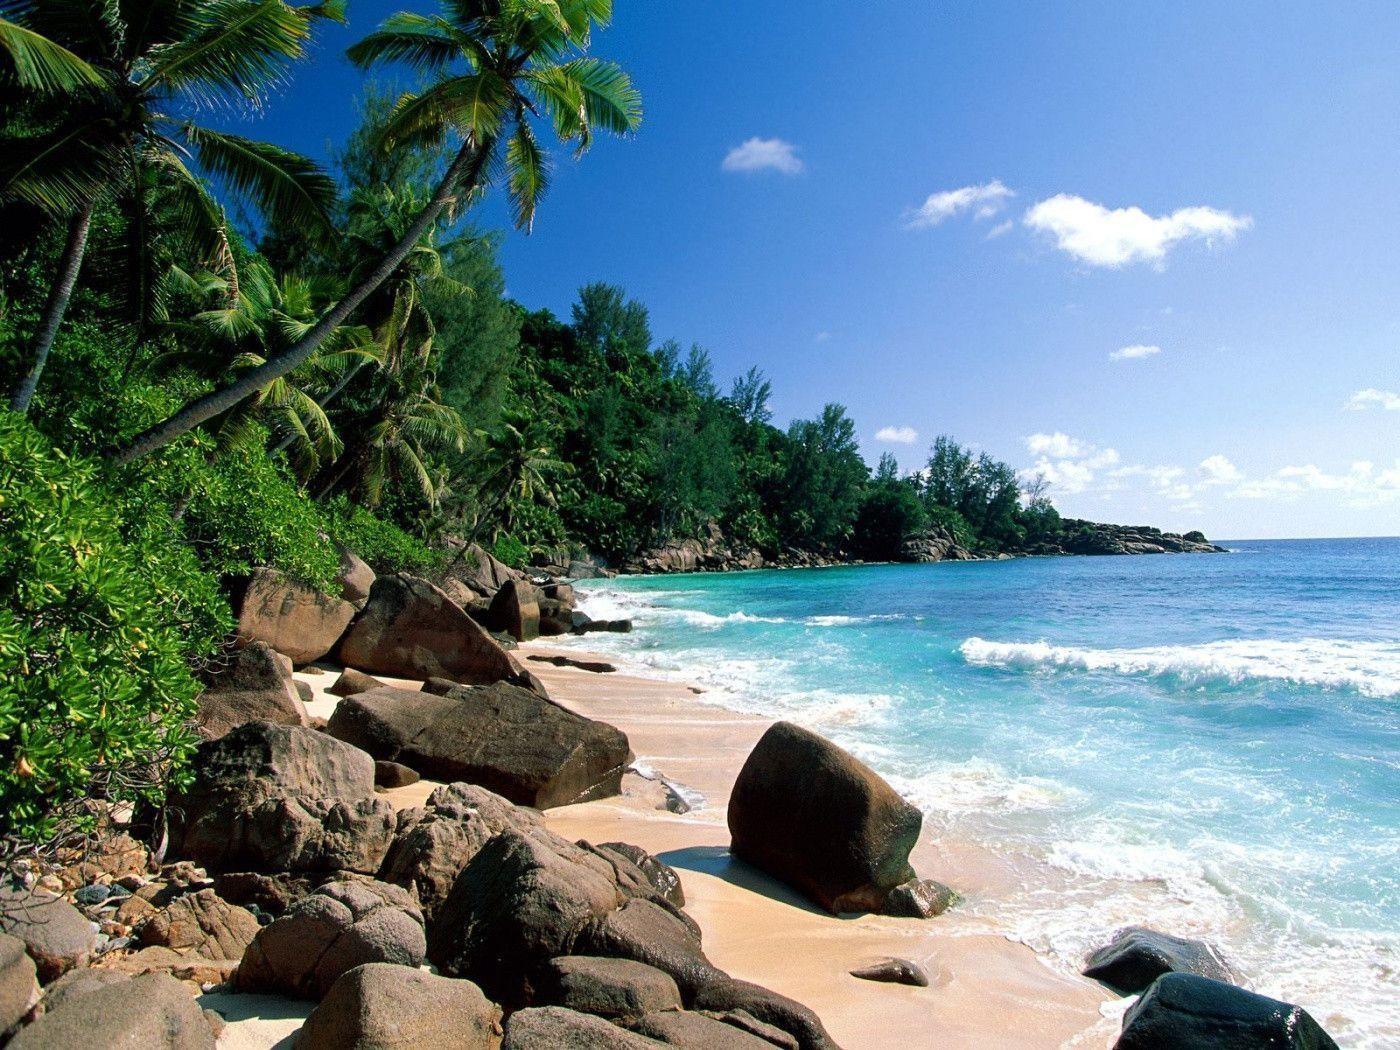 Puerto Rico Beach HD Wallpapers